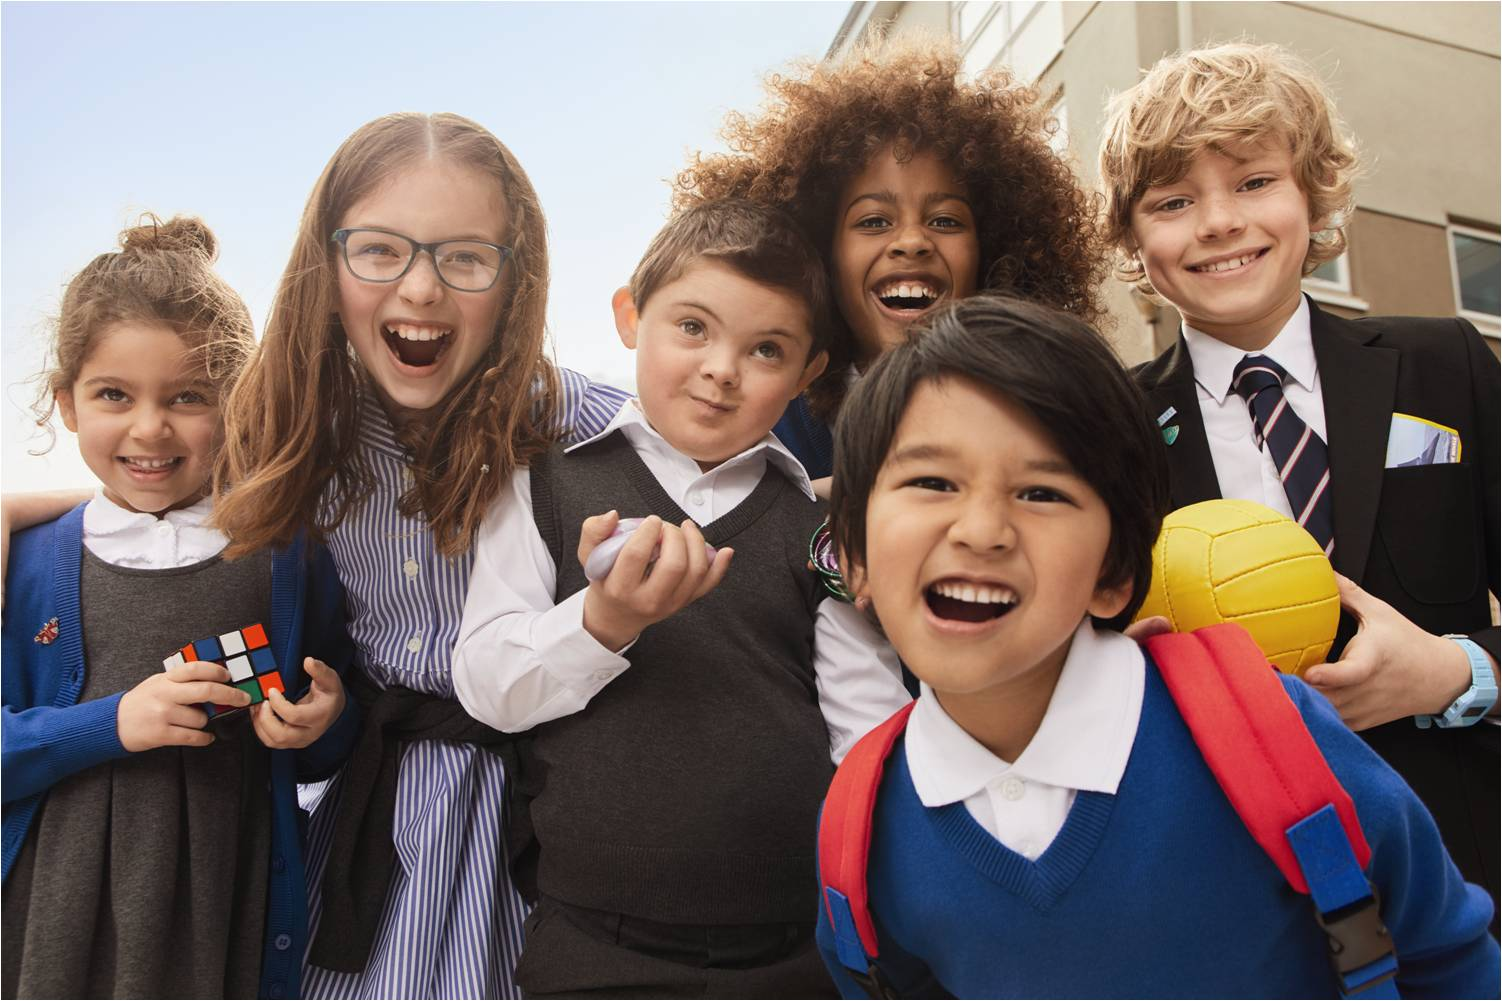 school uniforms and their effect on education To require uniforms or not to require uniforms: that is the question many school districts are facing these days students in many cities are wearing uniforms to school, and parents across the country are facing off over proposals to institute uniform policies.